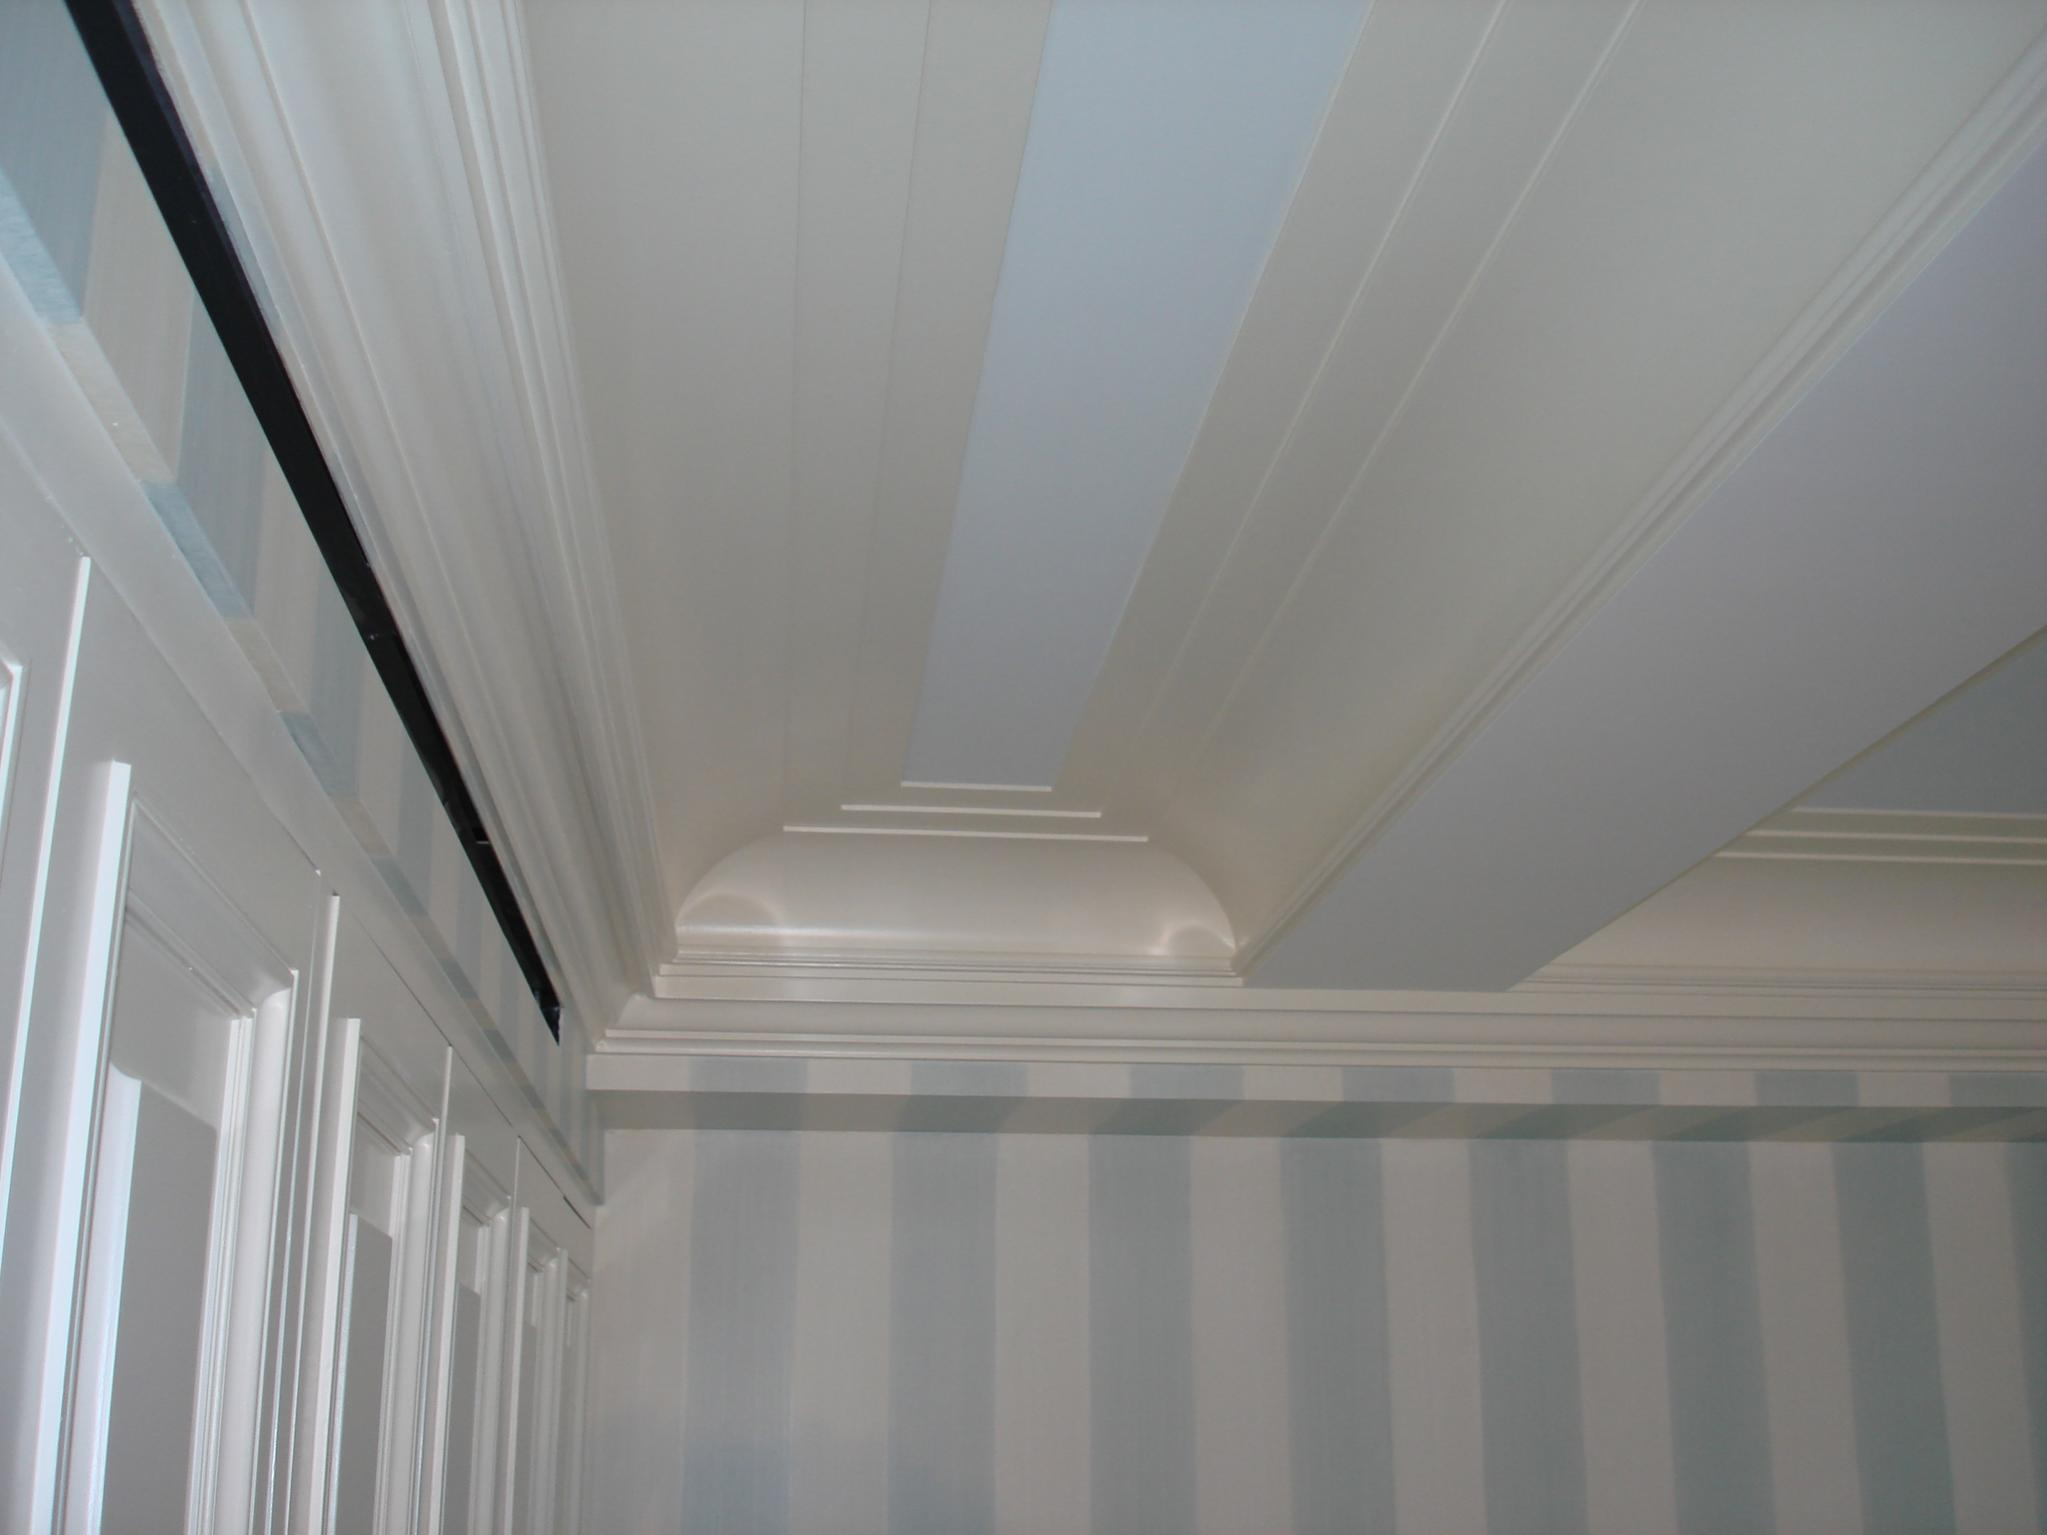 high gloss ceilings - painting & finish work - contractor talk